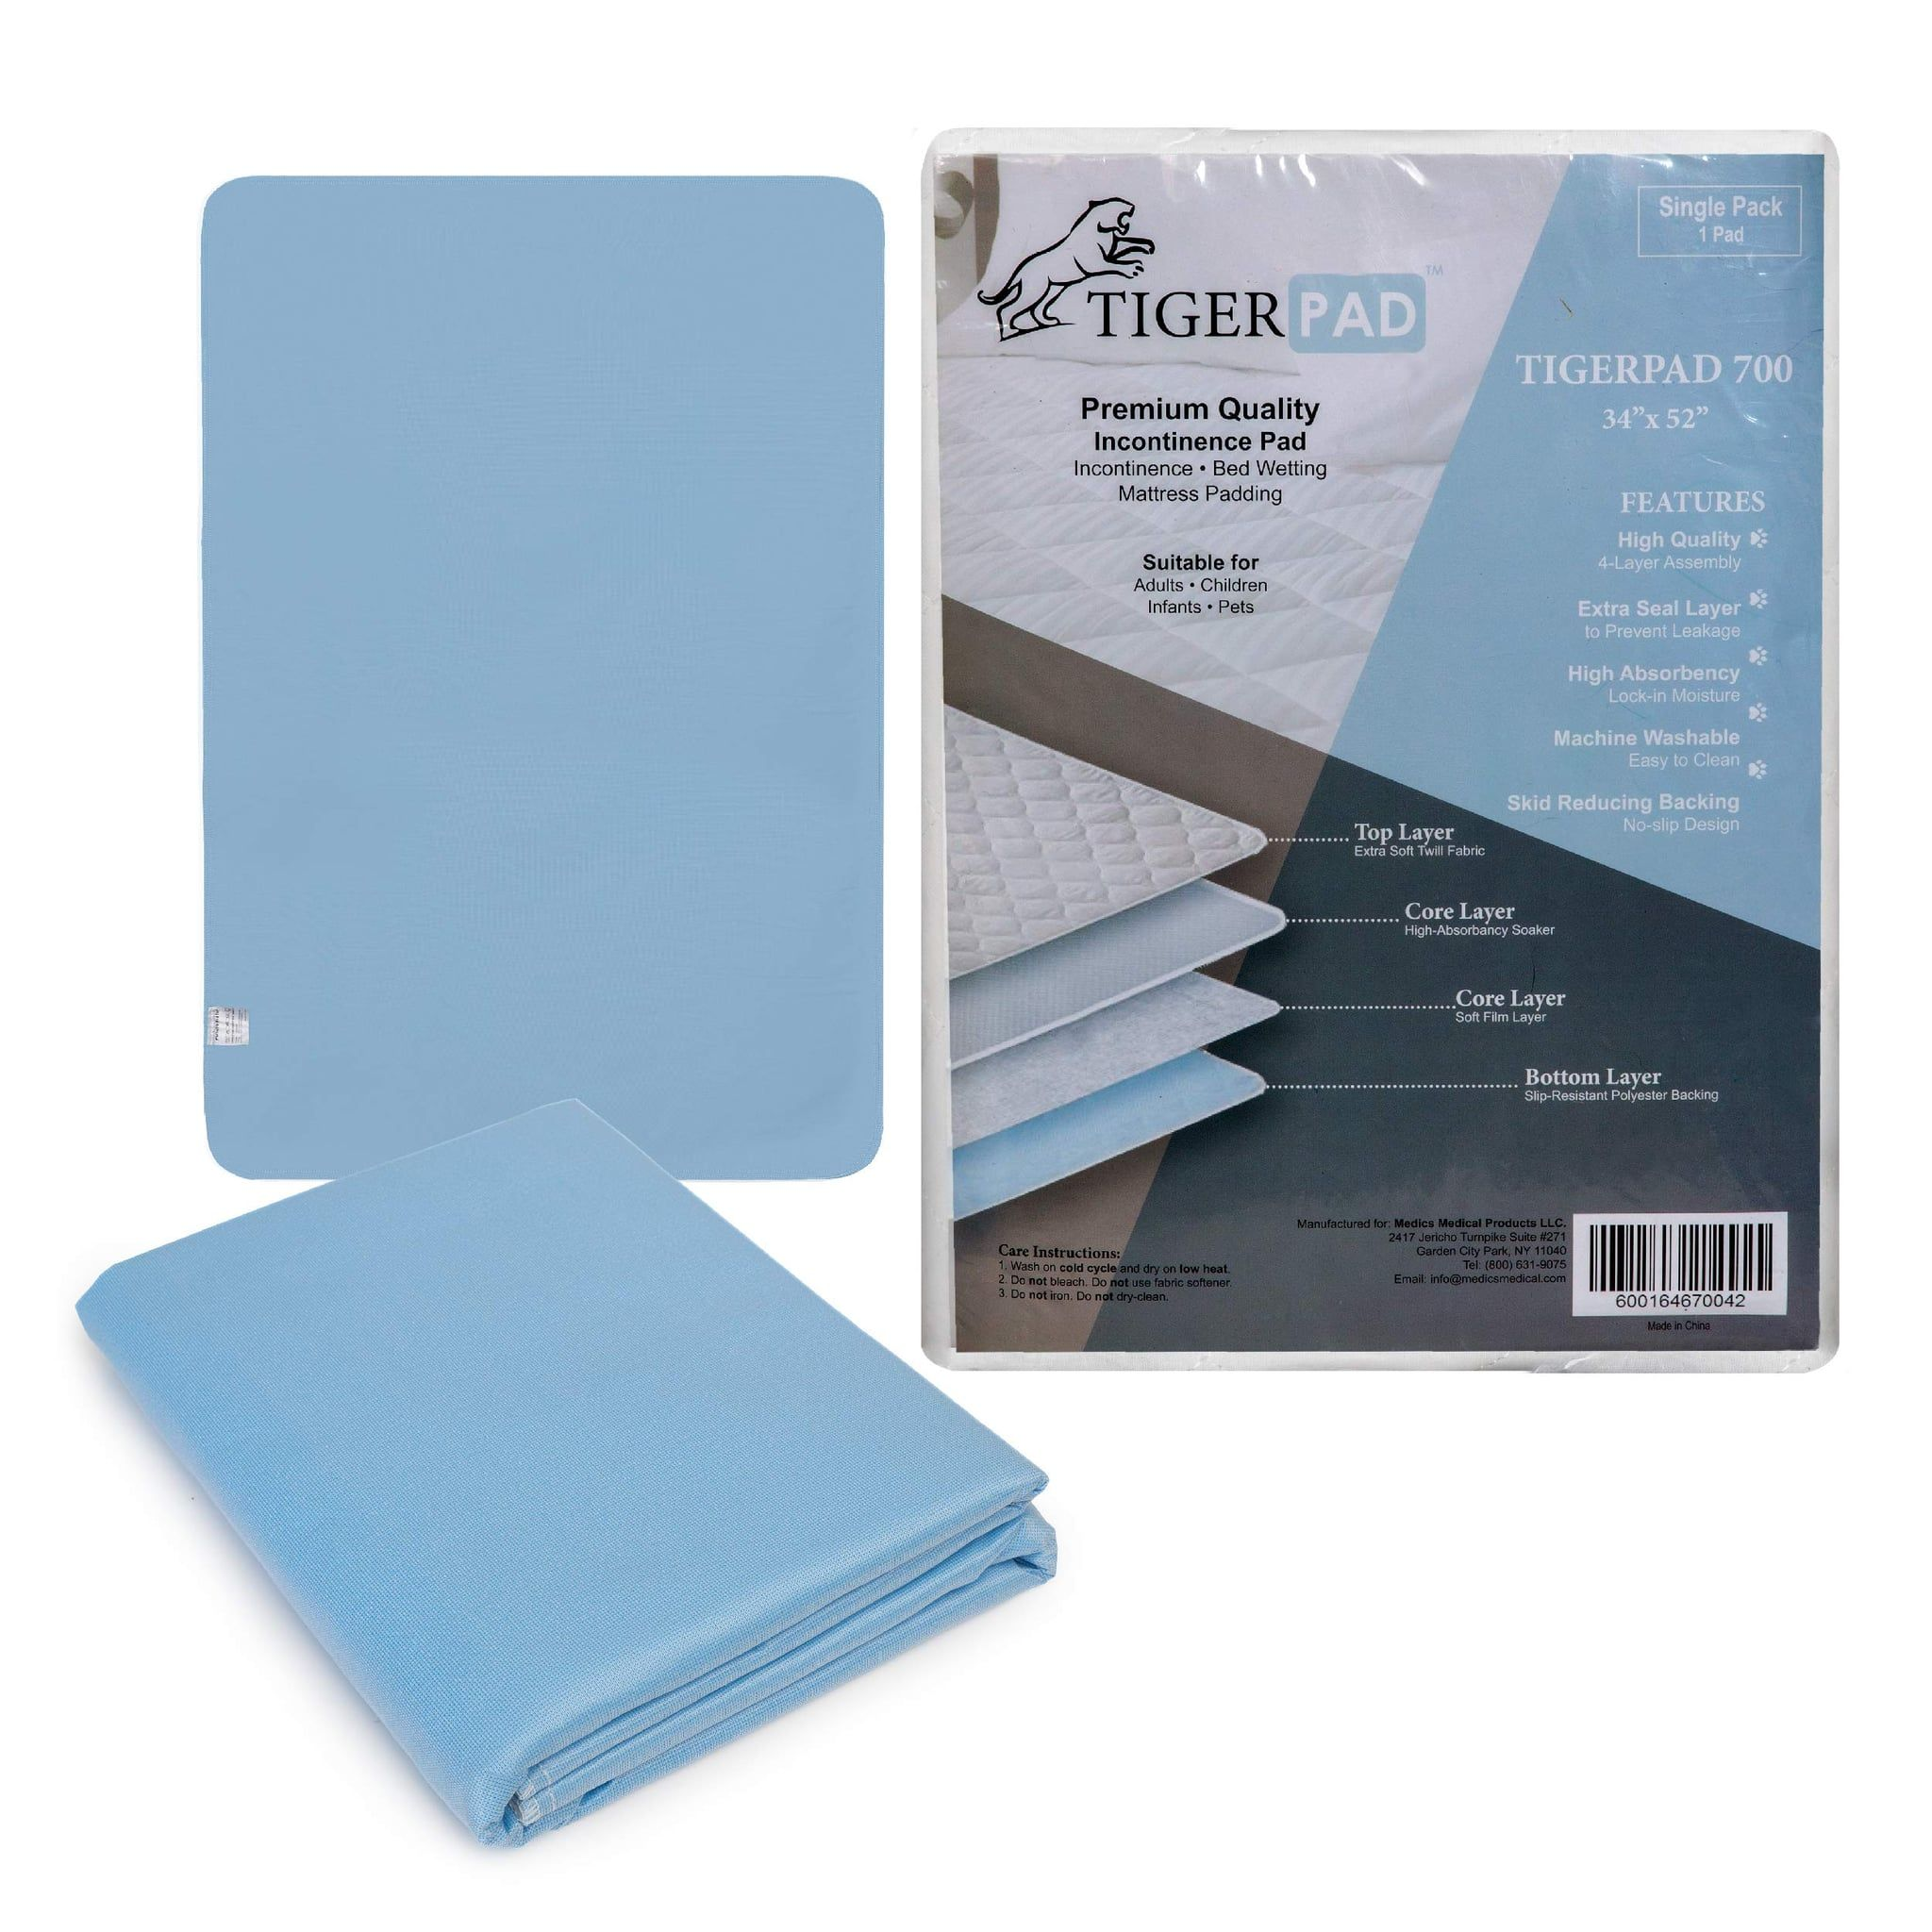 Tigerpad 4Pack Washable Incontinence Bed Pads Bed pads